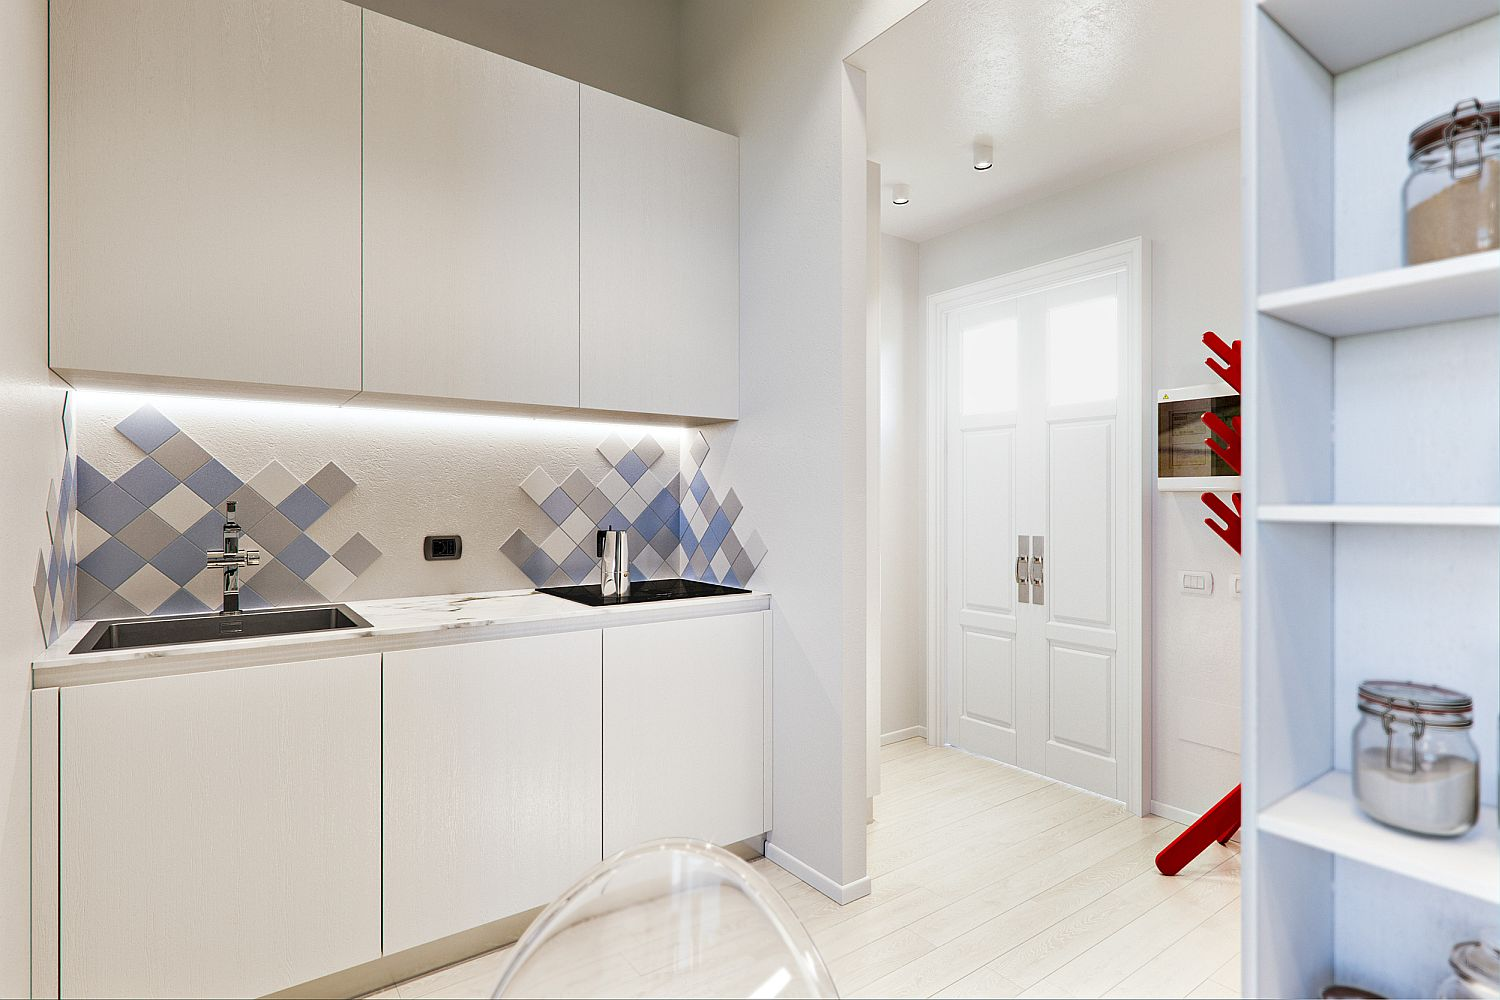 Small, monochromatic kitchen in white with an interesting backsplash that has blue and gray